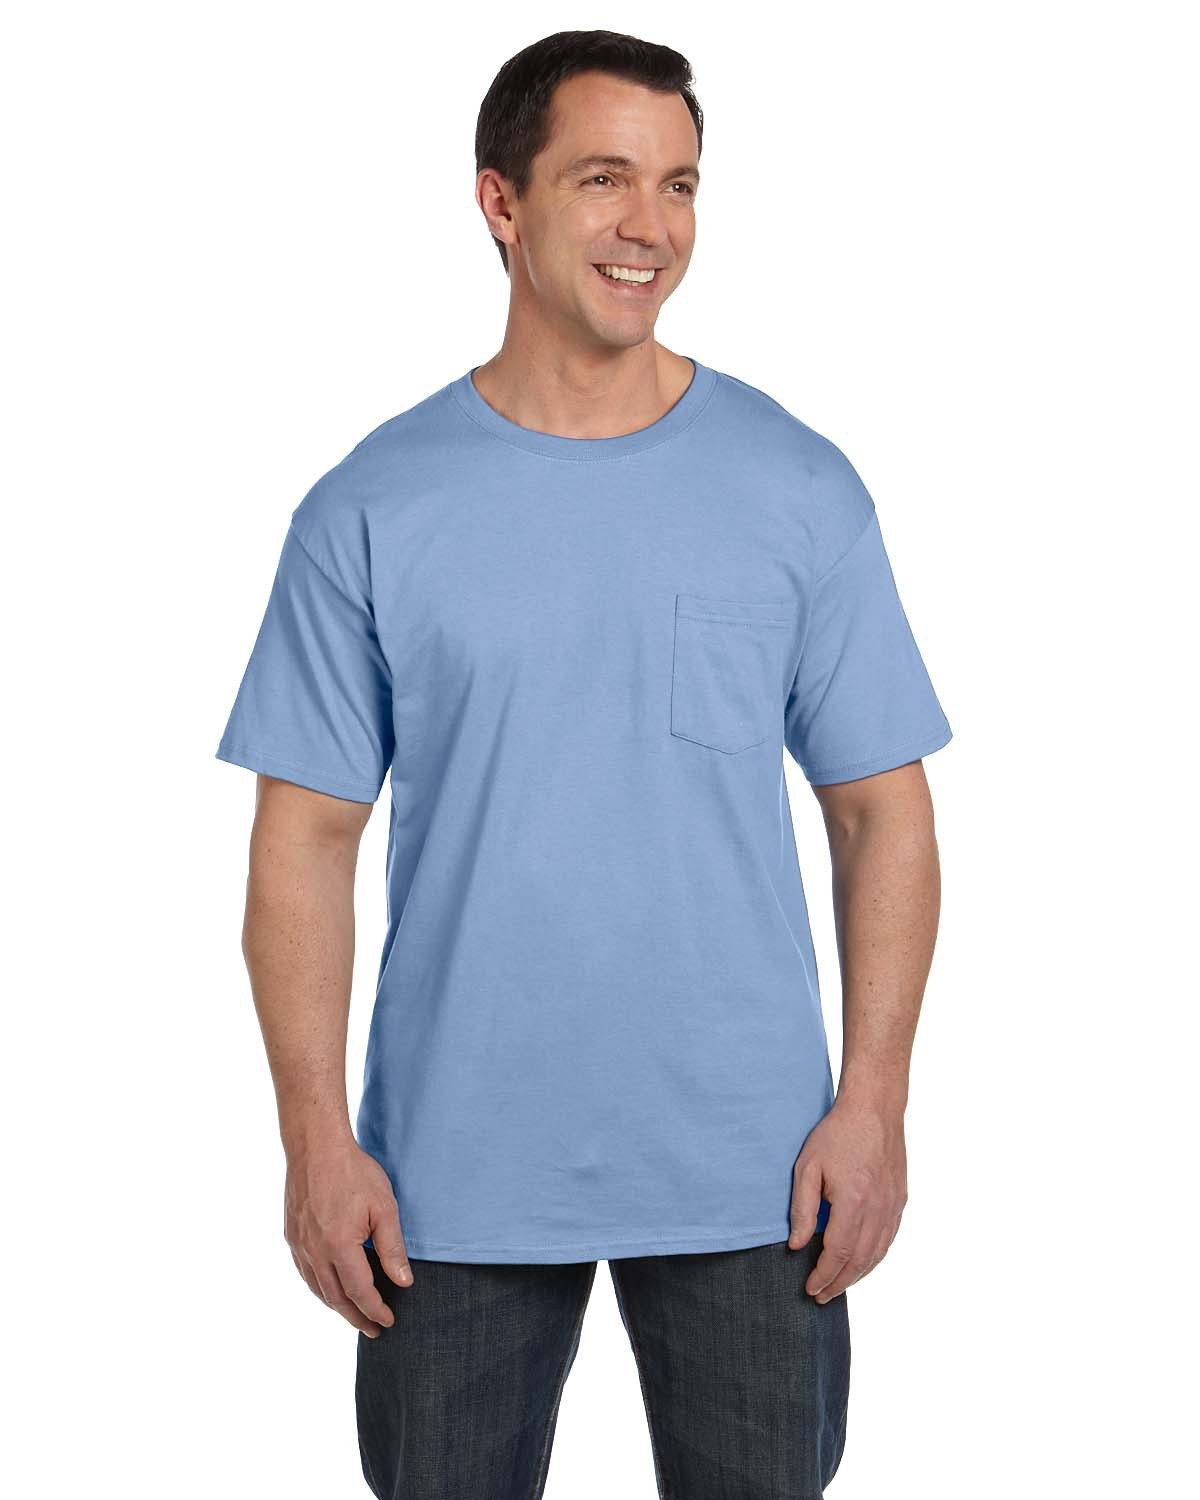 Hanes Adult Beefy-T® with Pocket LIGHT BLUE